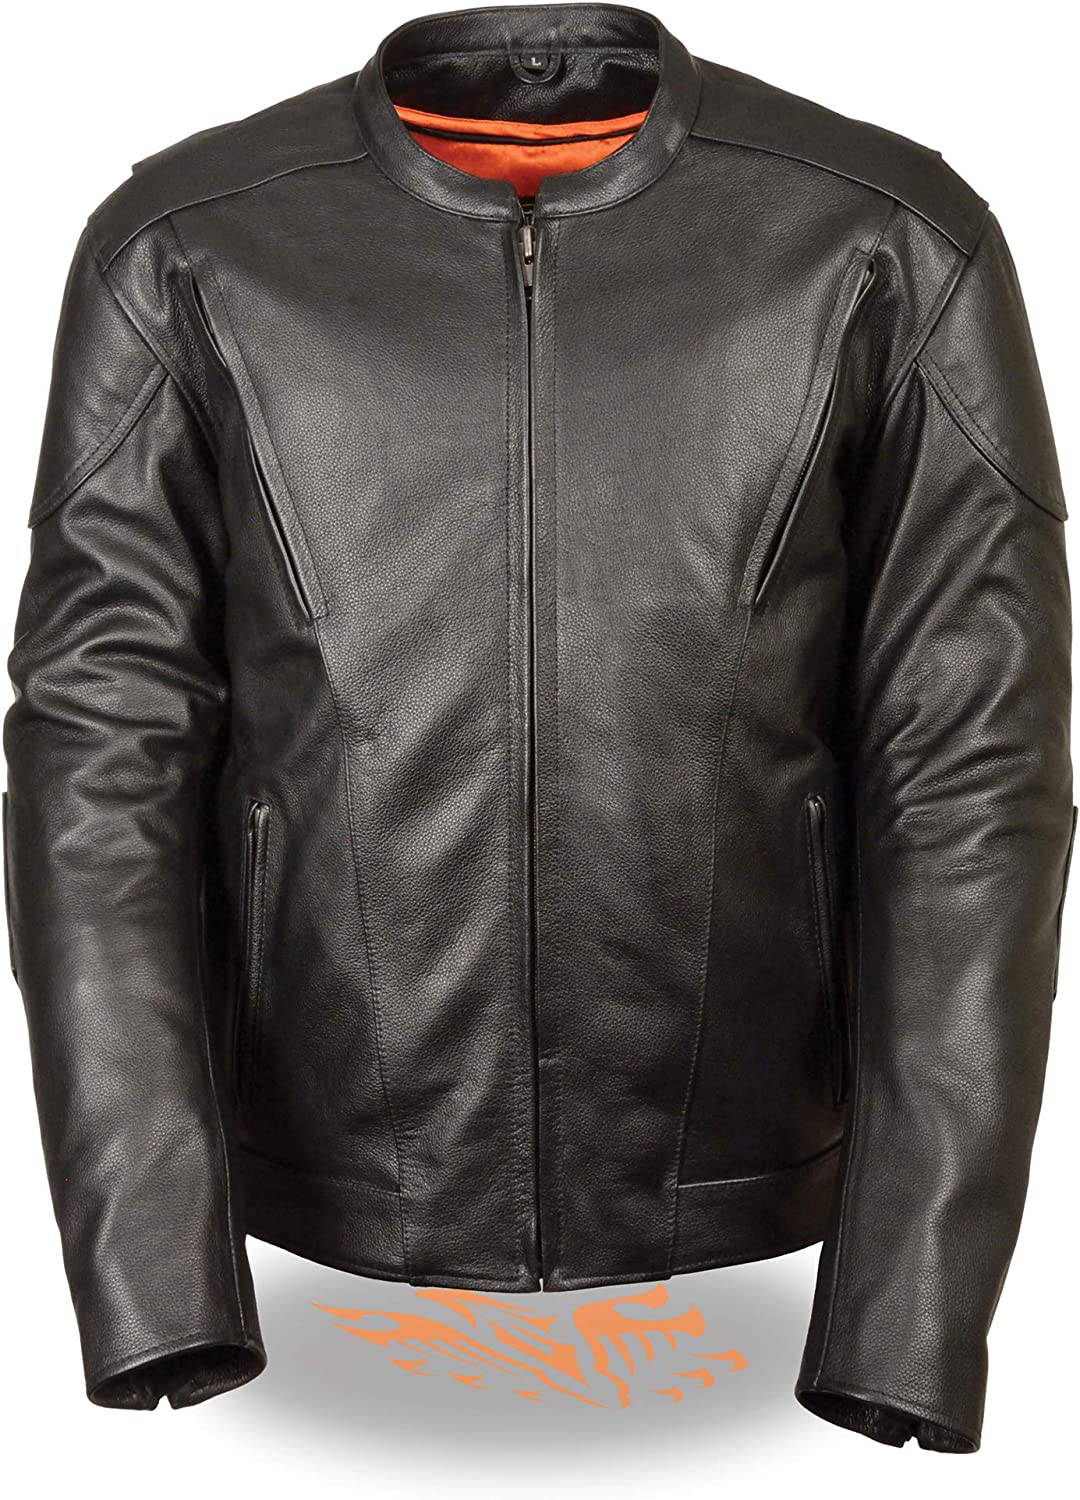 Mens Leather Vented Scooter Jacket with Kidney Back Padding, Black Size S